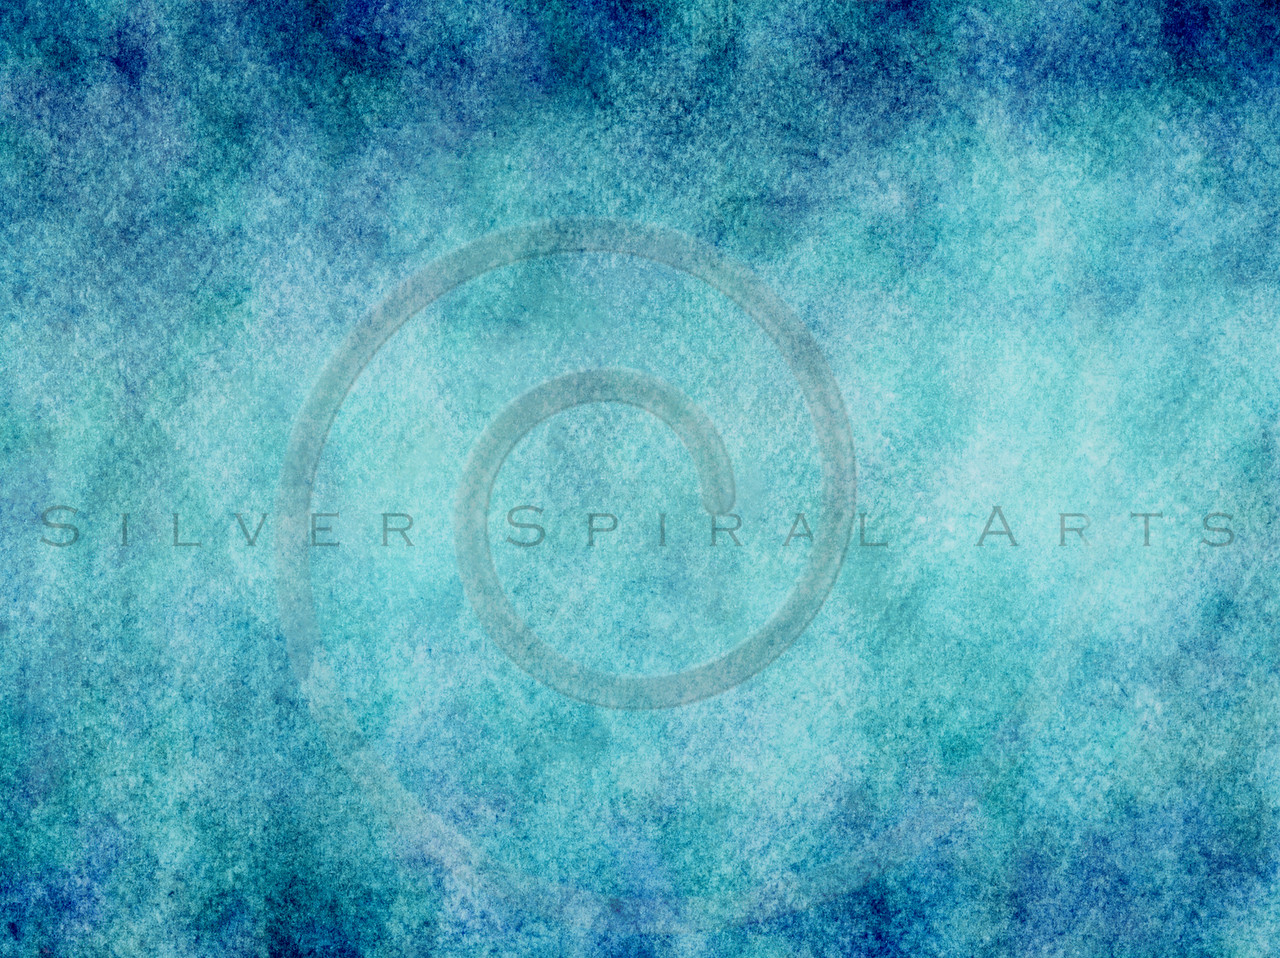 Teal Aqua Blue Watercolor Paper Texture Background